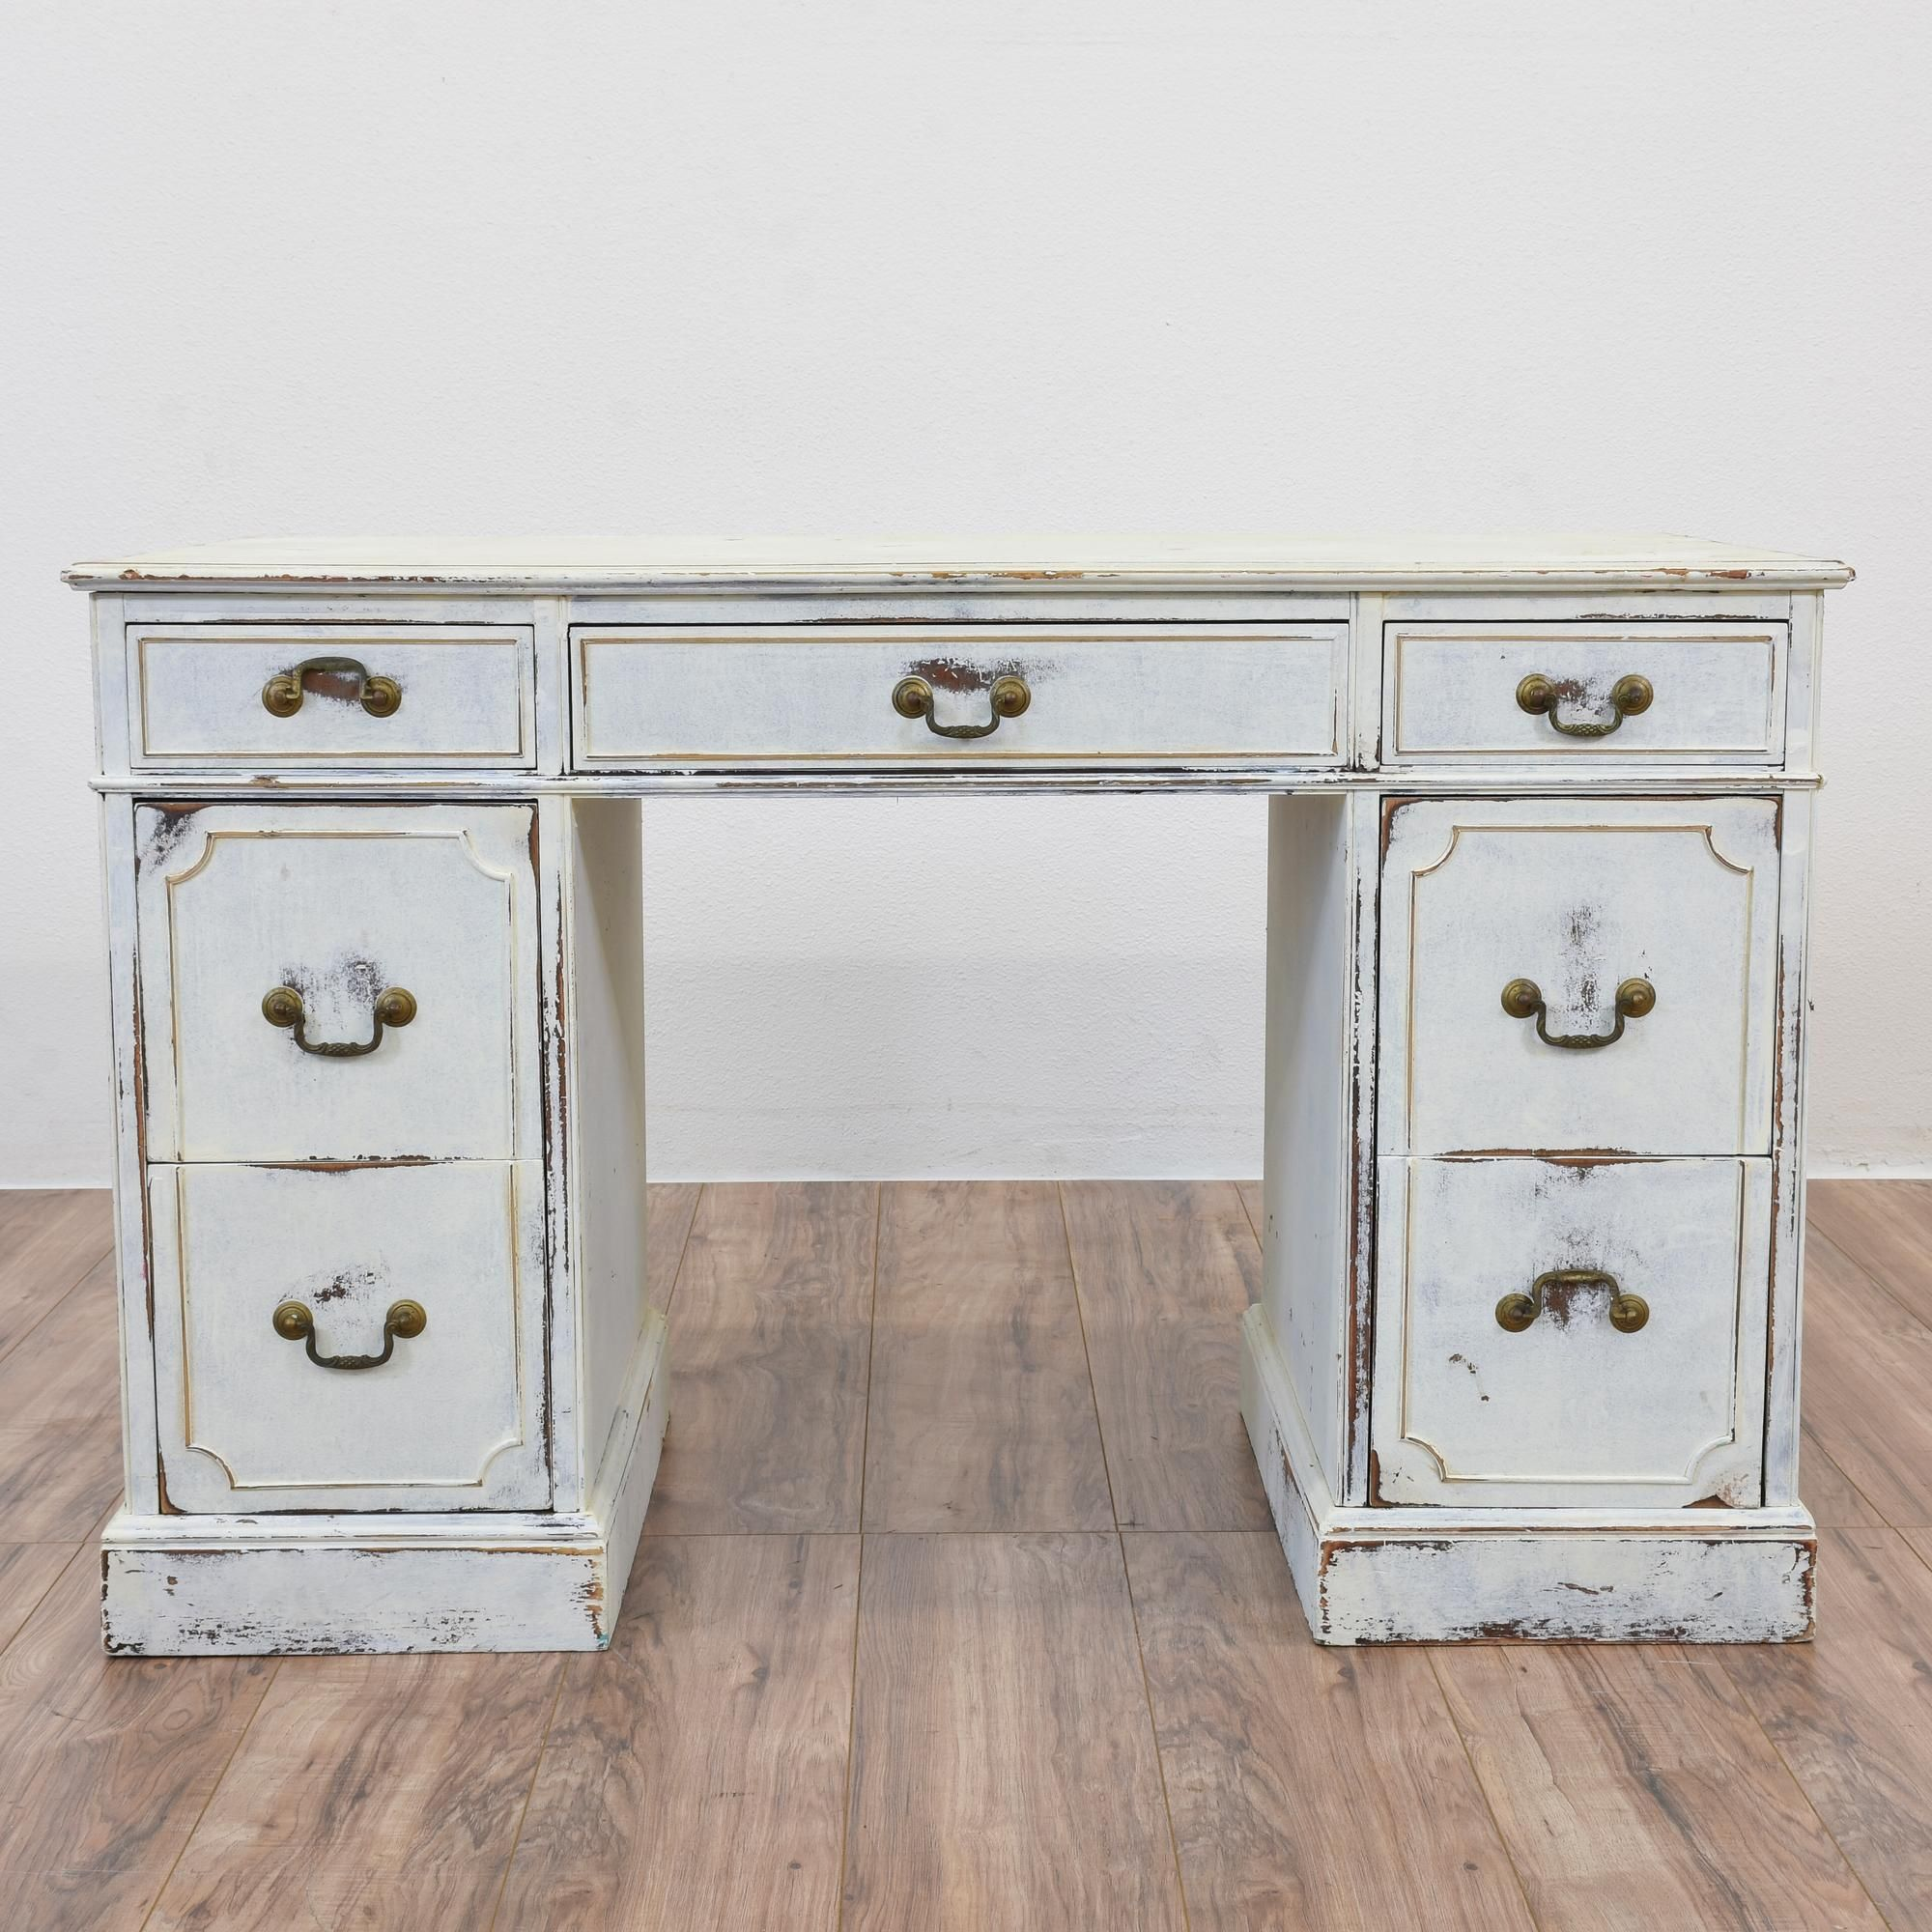 This shabby chic kneehole desk is featured in a solid wood painted